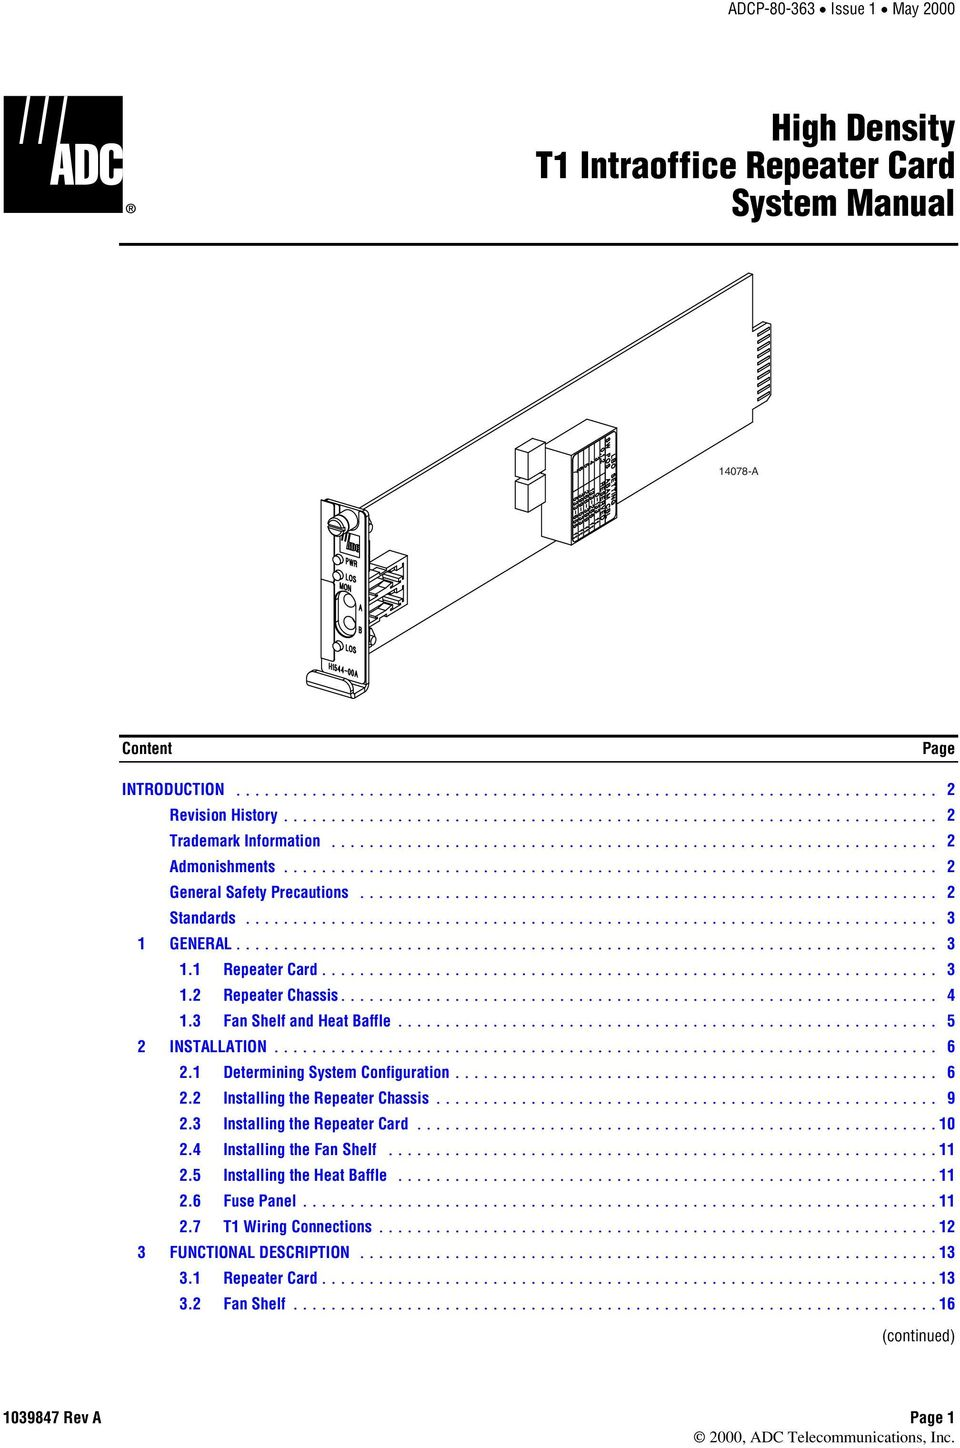 High Density T1 Intraoffice Repeater Card System Manual Pdf Ek Fuse Box Diagram 1 Determining Onfiguration 6 22 Installing The Epeater Hassis